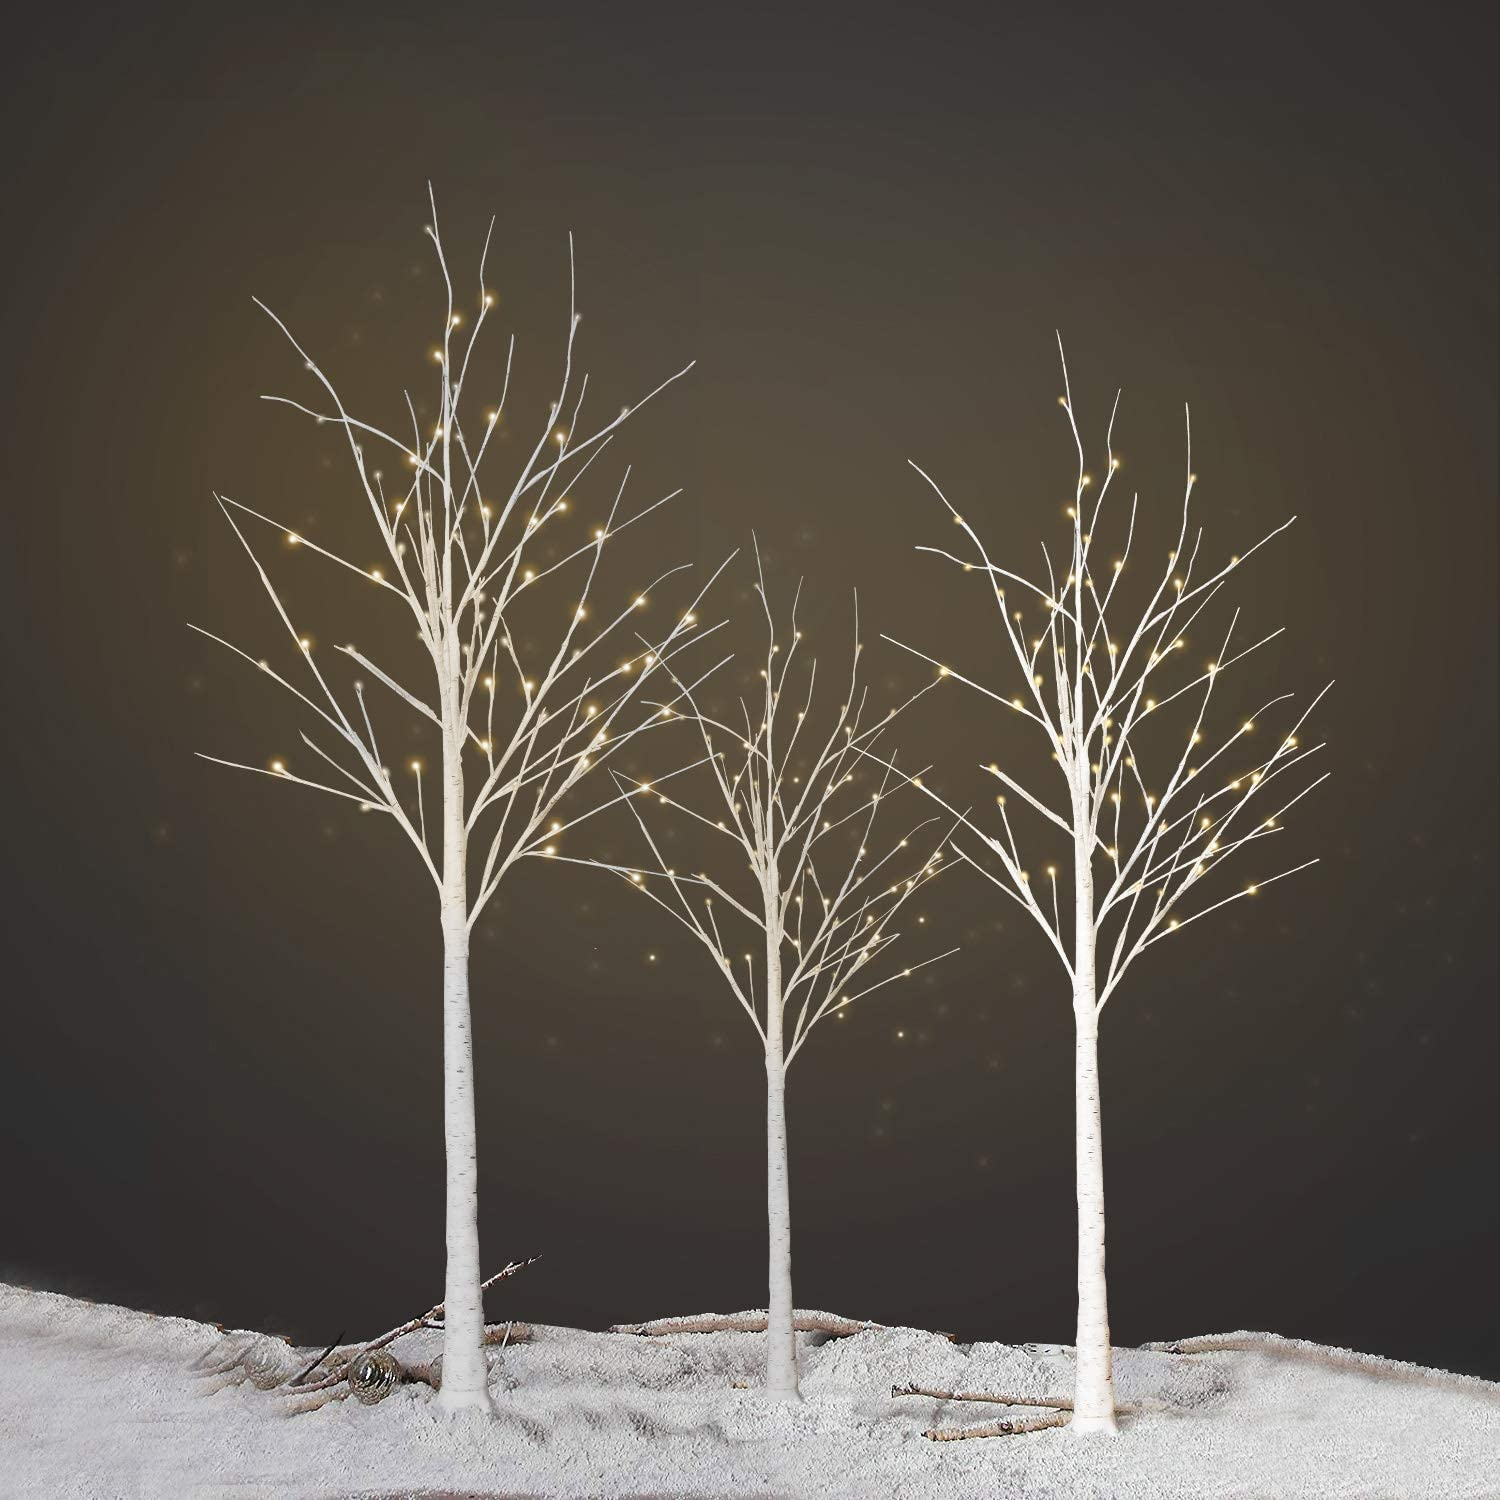 DKLGG 3 Pieces Birch Christmas Tree, 4FT 5FT 6FT Warm White LED Pre-lit Artificial Tabletop Bonsai Trees Light Jewelry Holder Decor for Home | Holiday | Party | Wedding